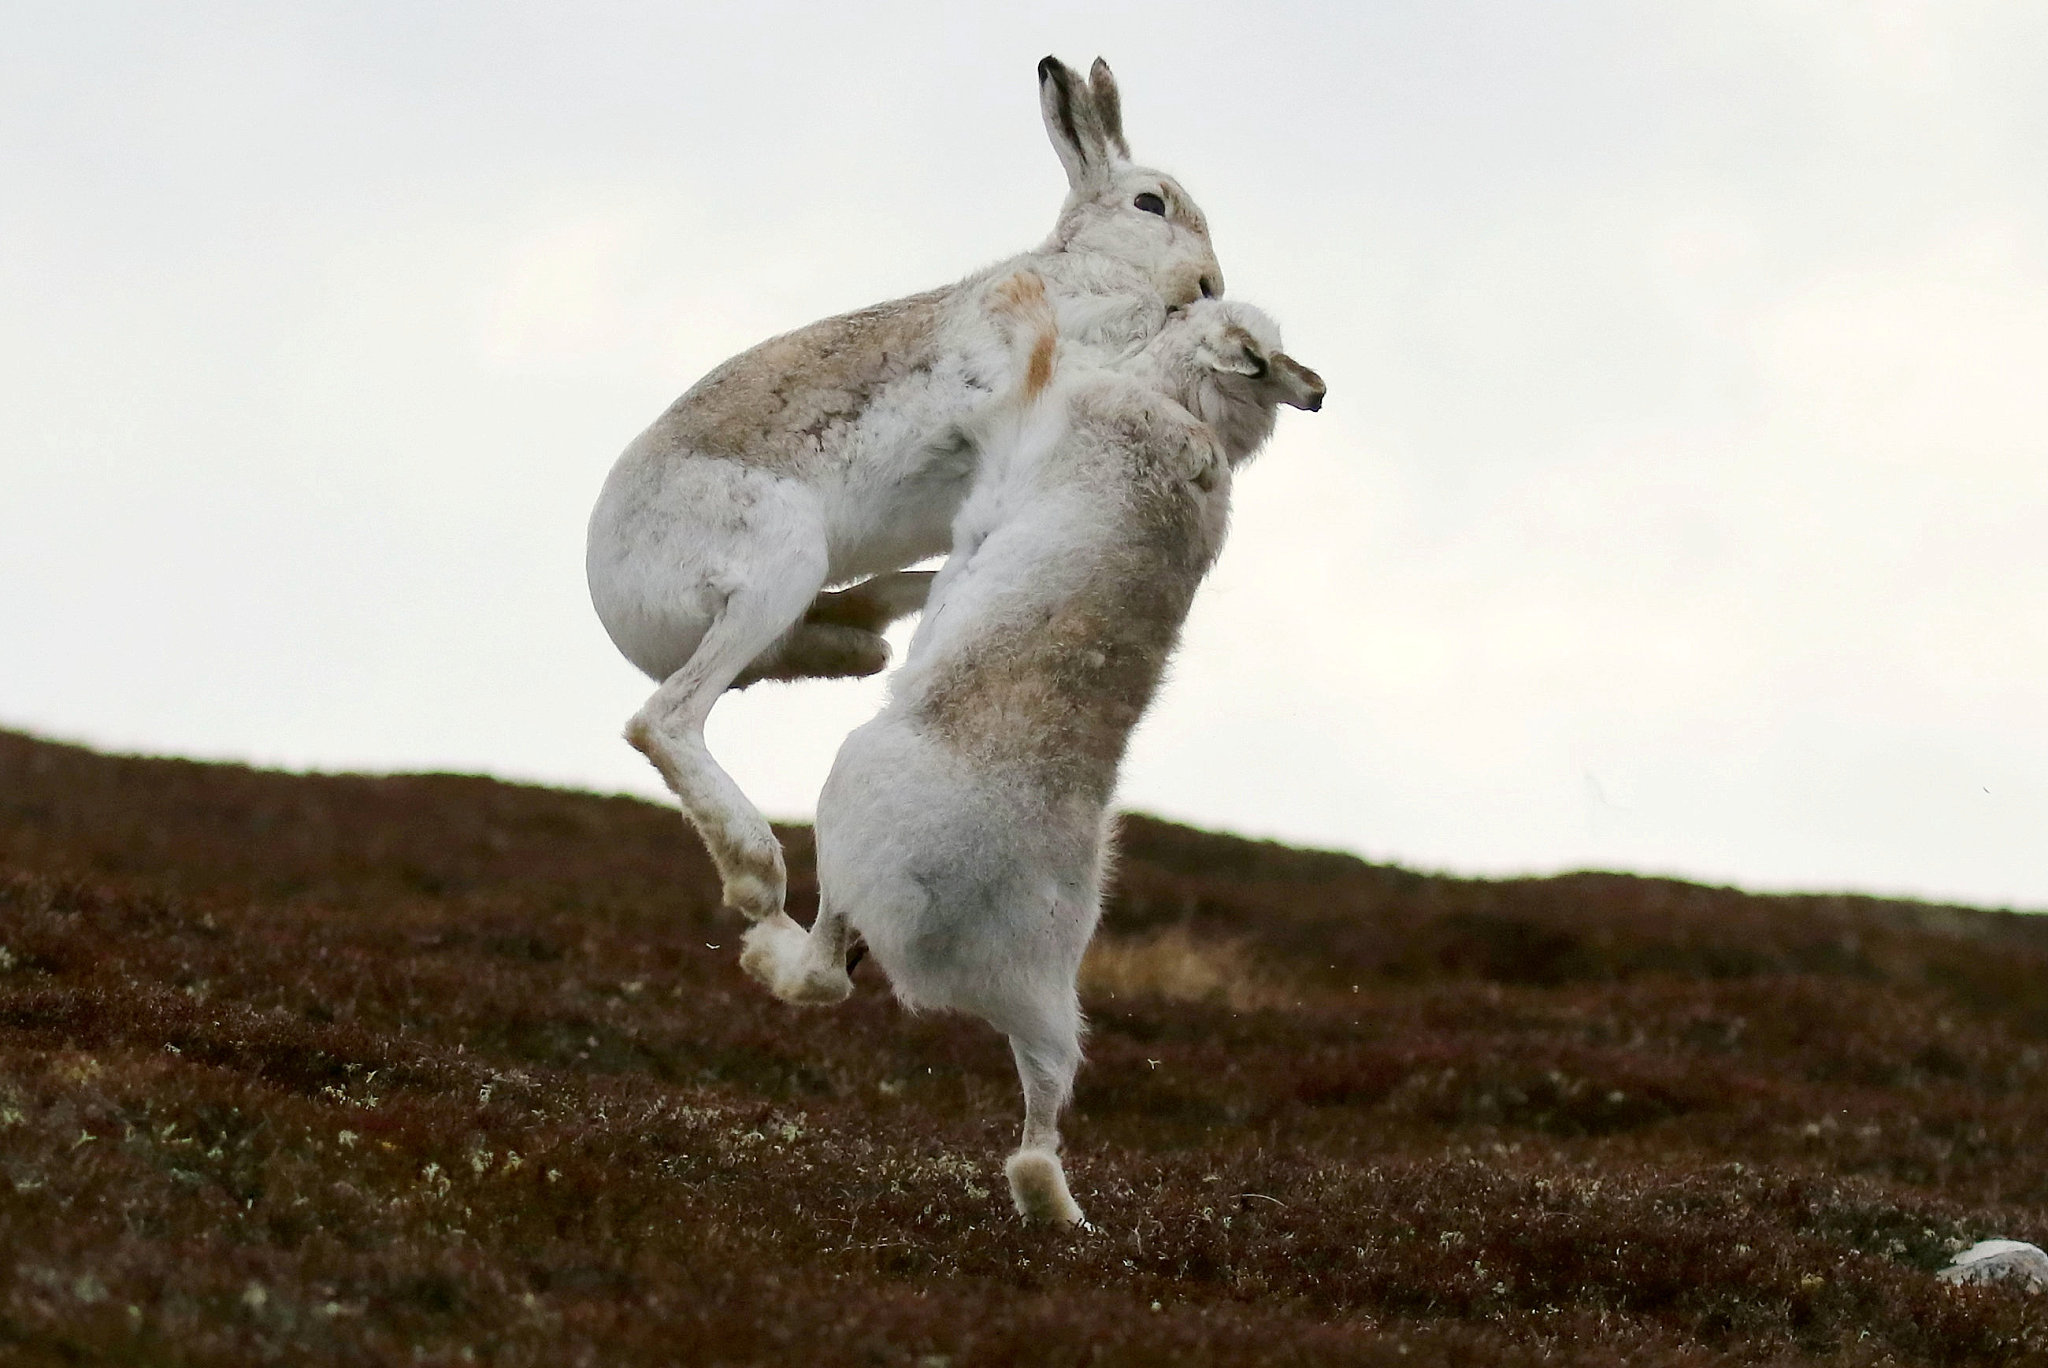 The intense boxing game between two hares